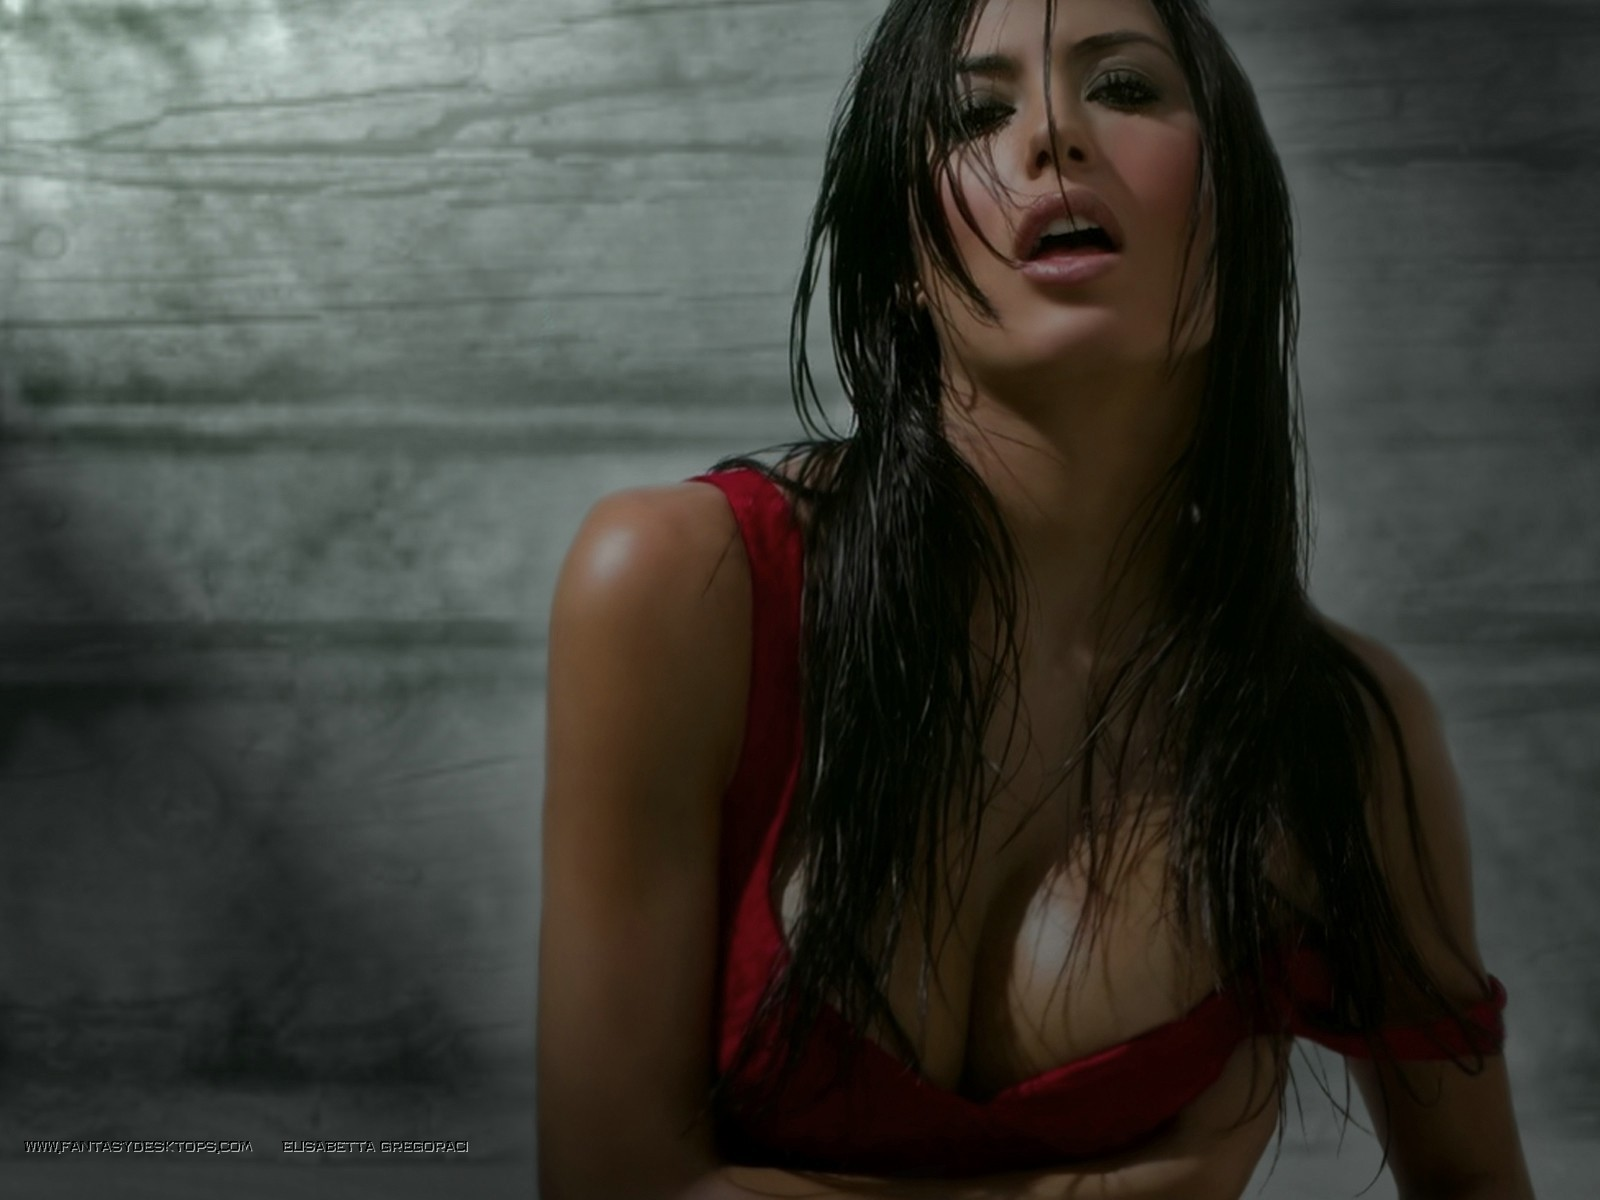 wet Elisabetta Gregoraci wet HD Wallpaper